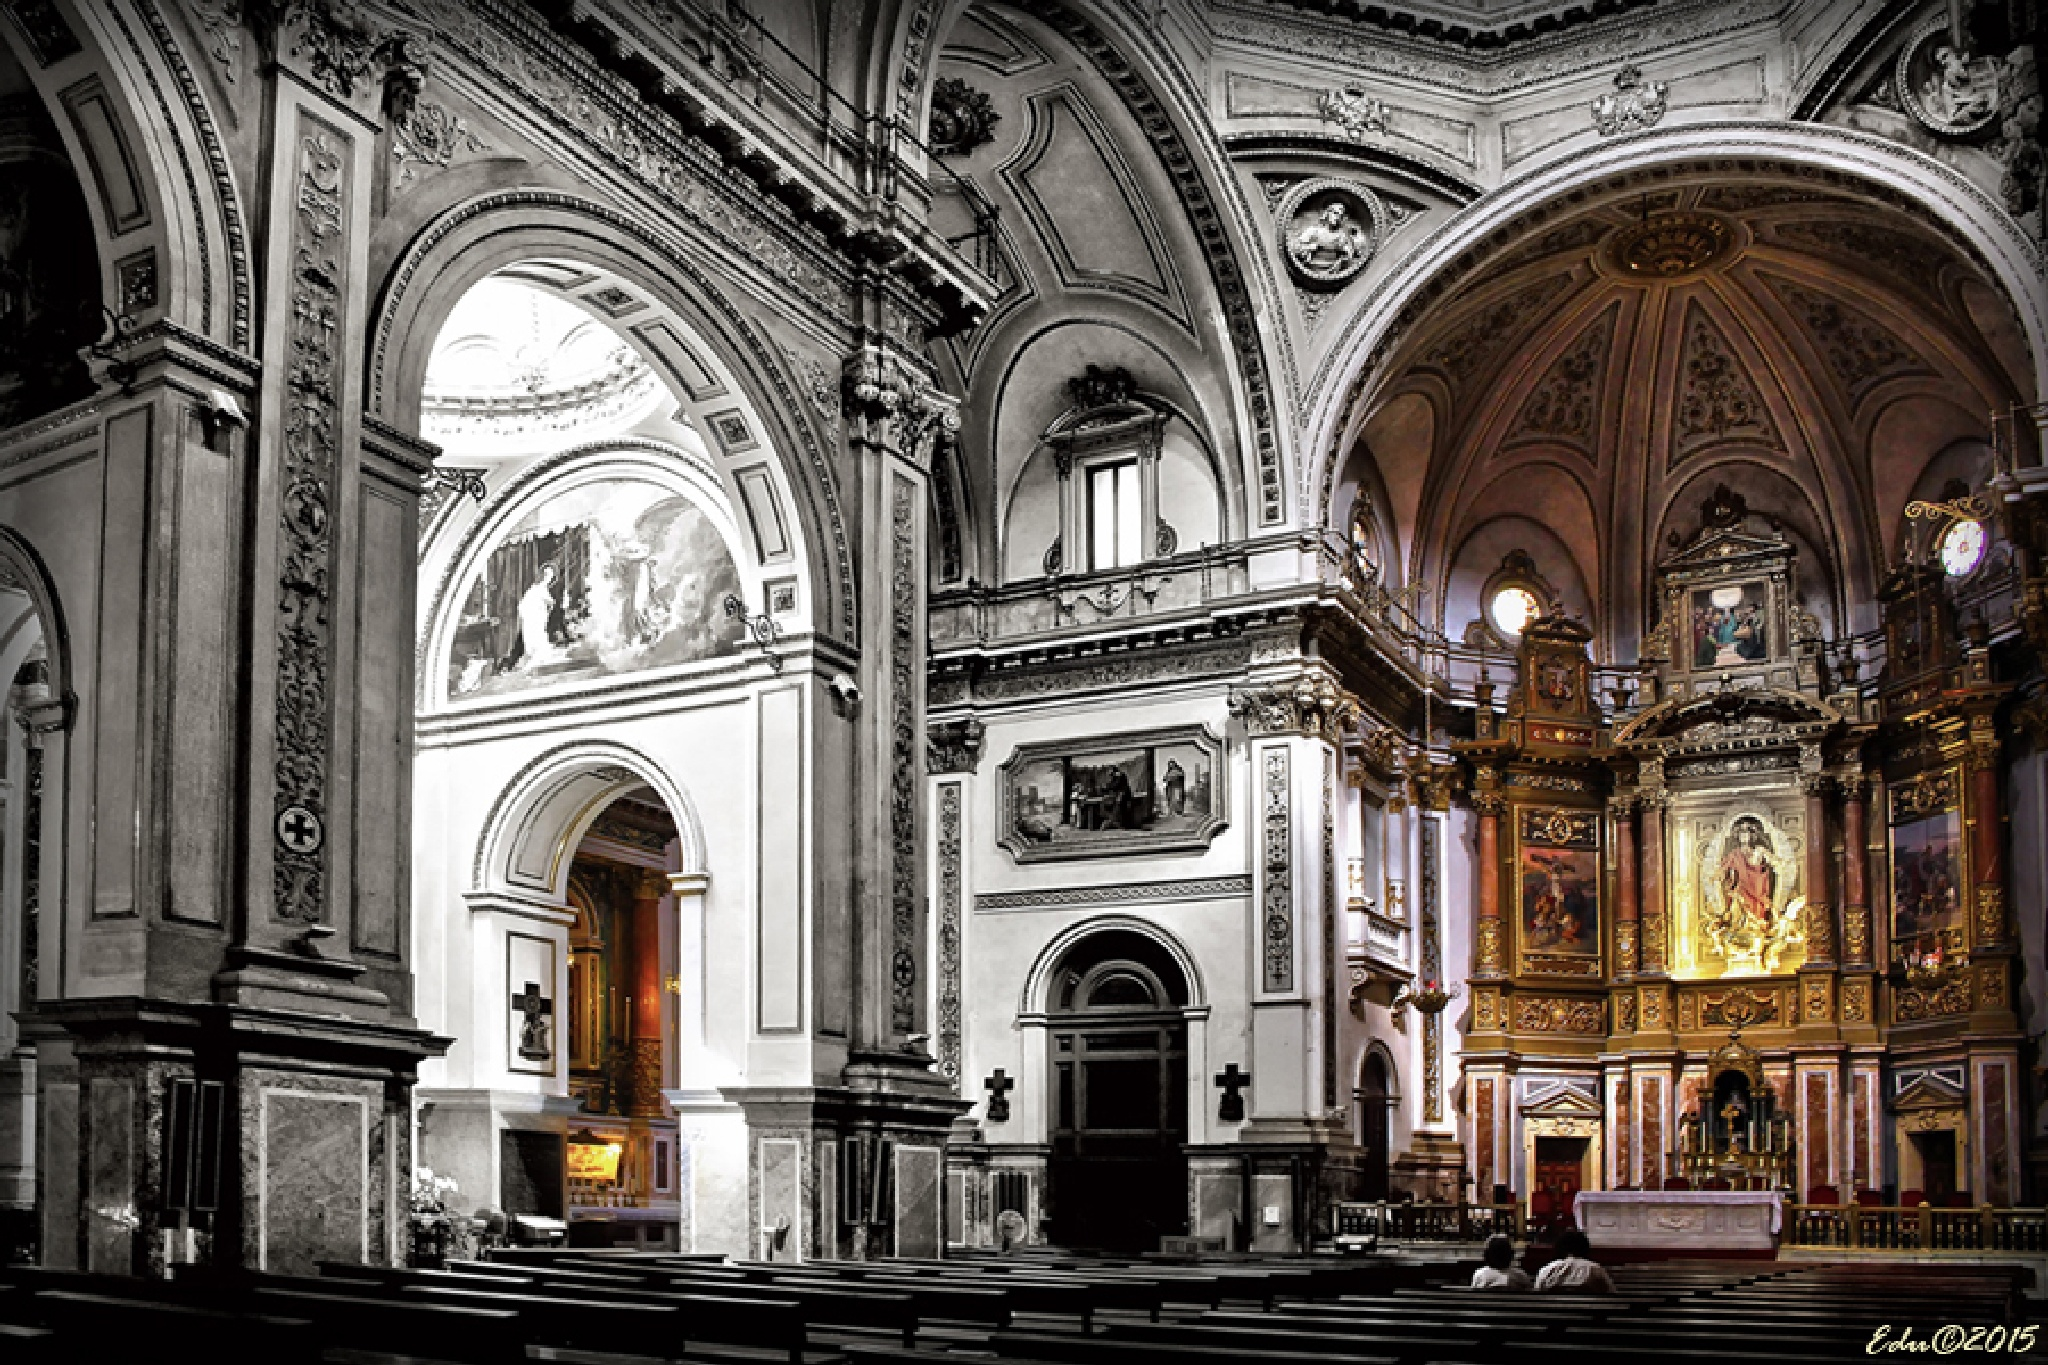 THE CHURCH OPEN AND THE BEADLE IN THE DOOR by vallesedu